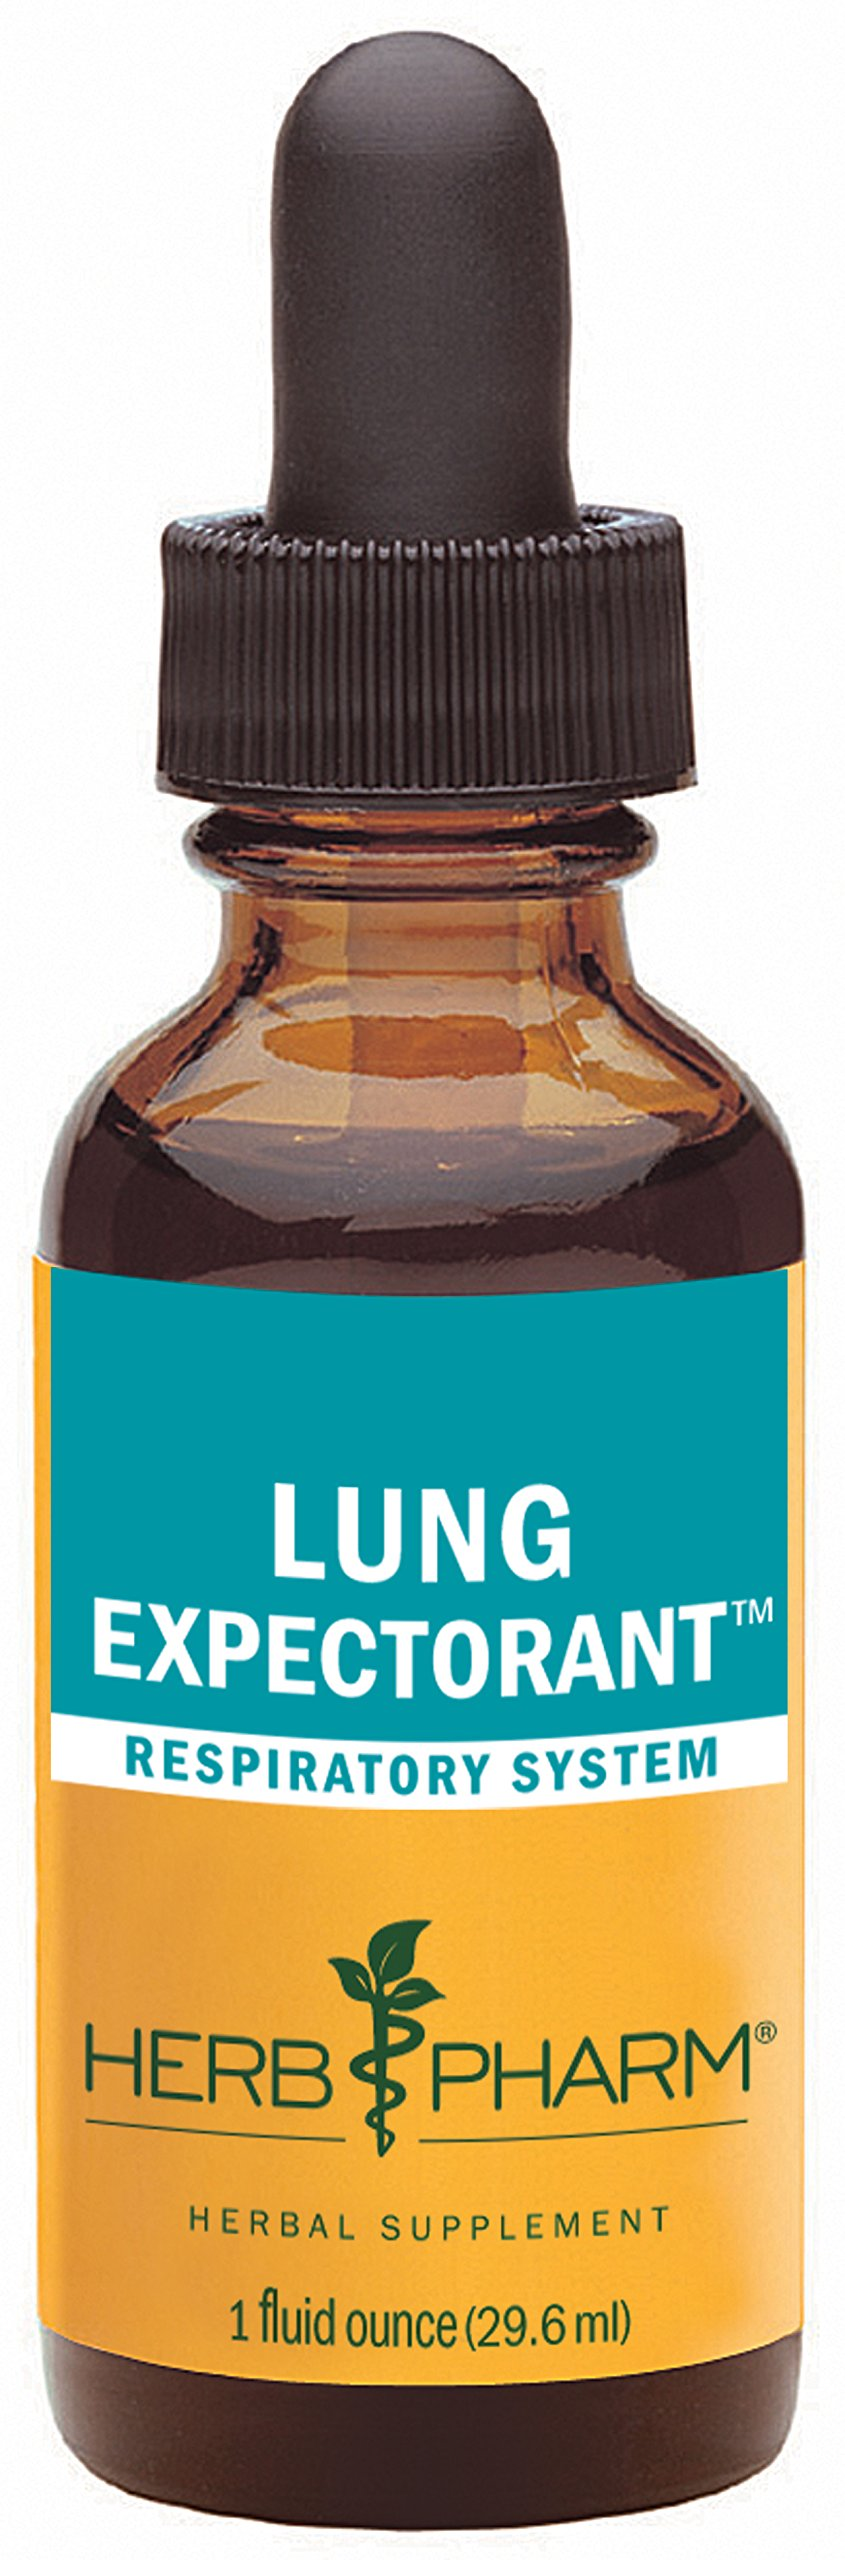 Herb Pharm Lung Expectorant Herbal Formula to Support Respiratory Immune Response - 1 Ounce